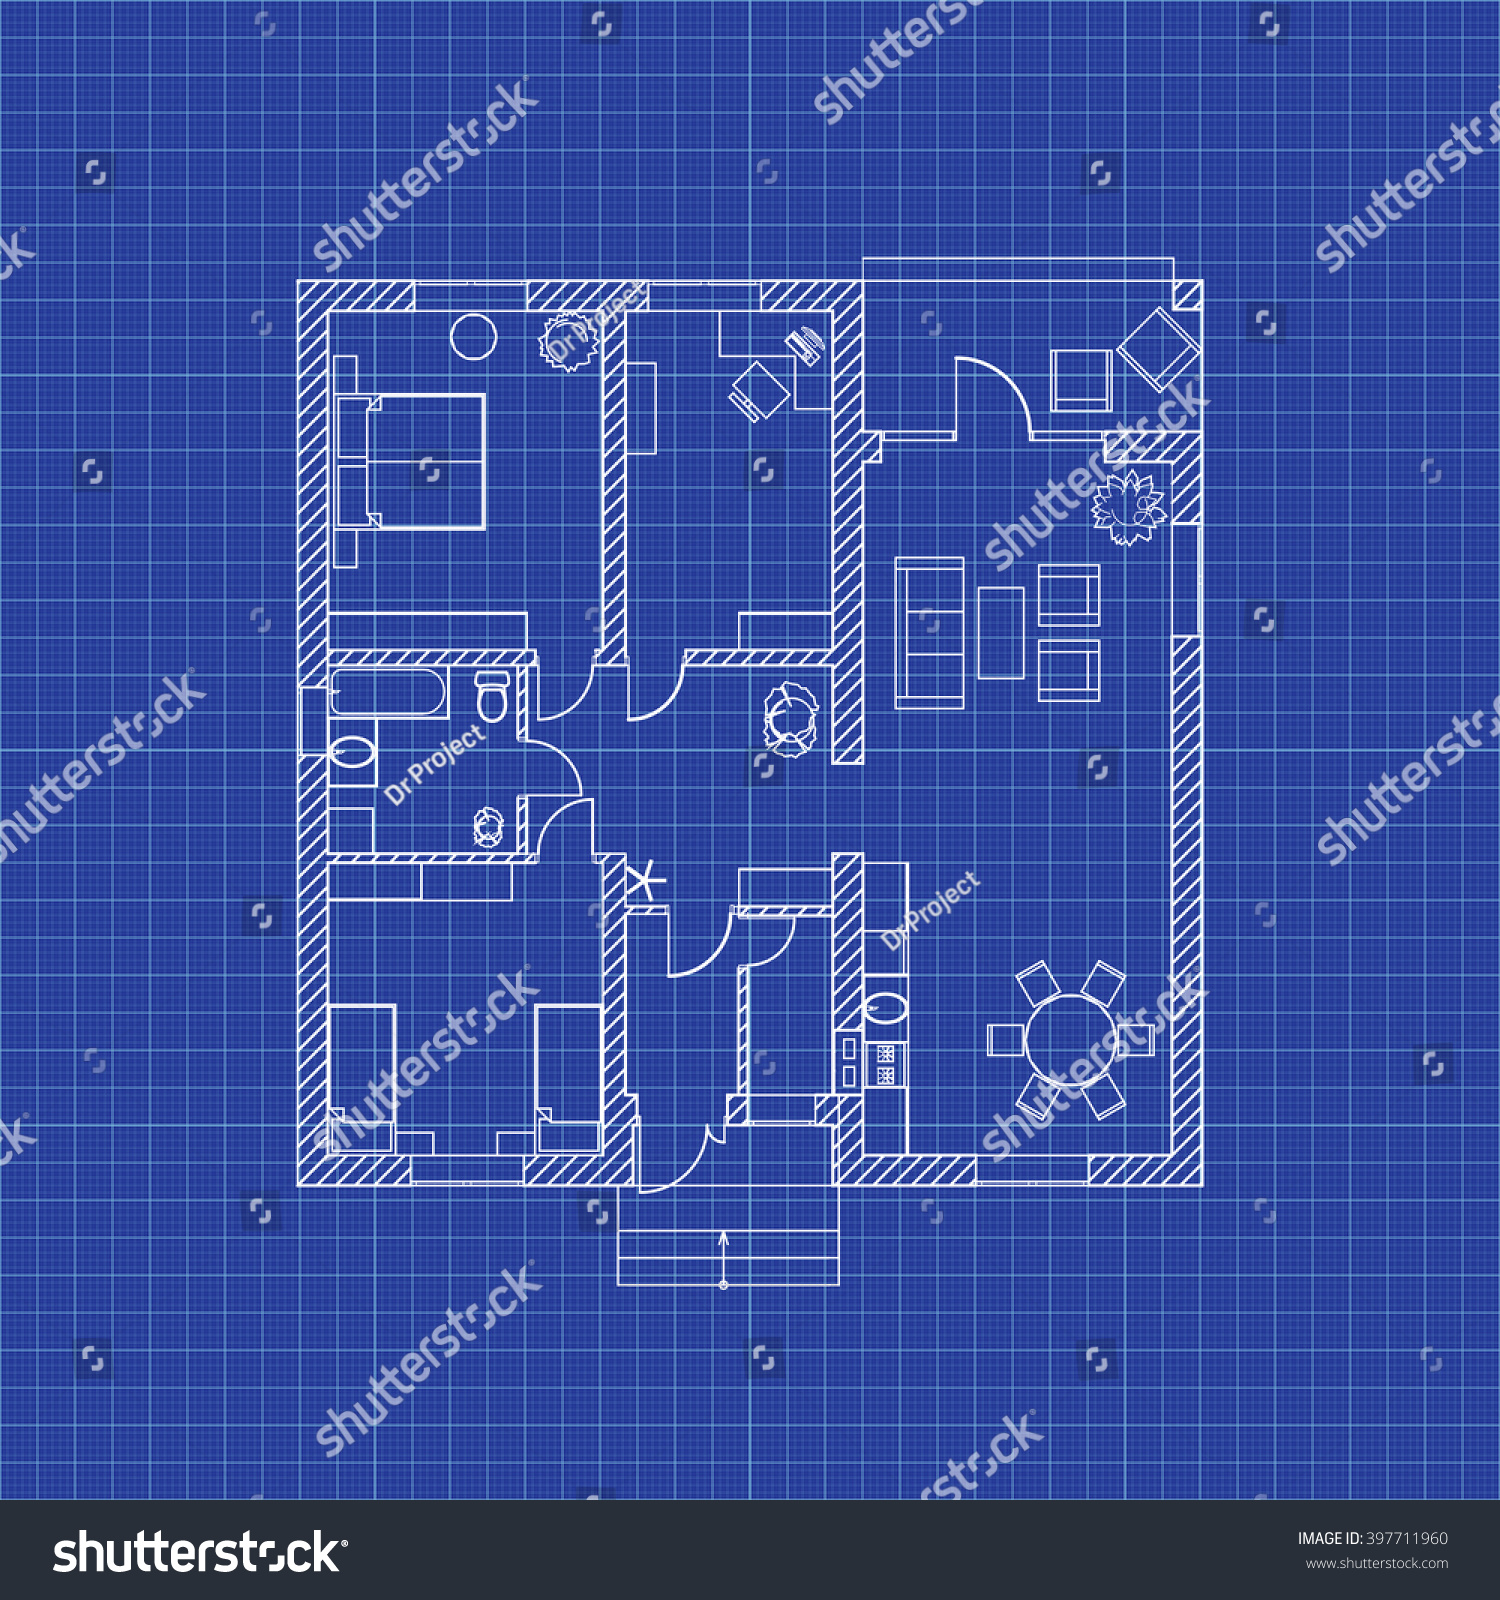 How To Draw A Floor Plan On Graph Paper